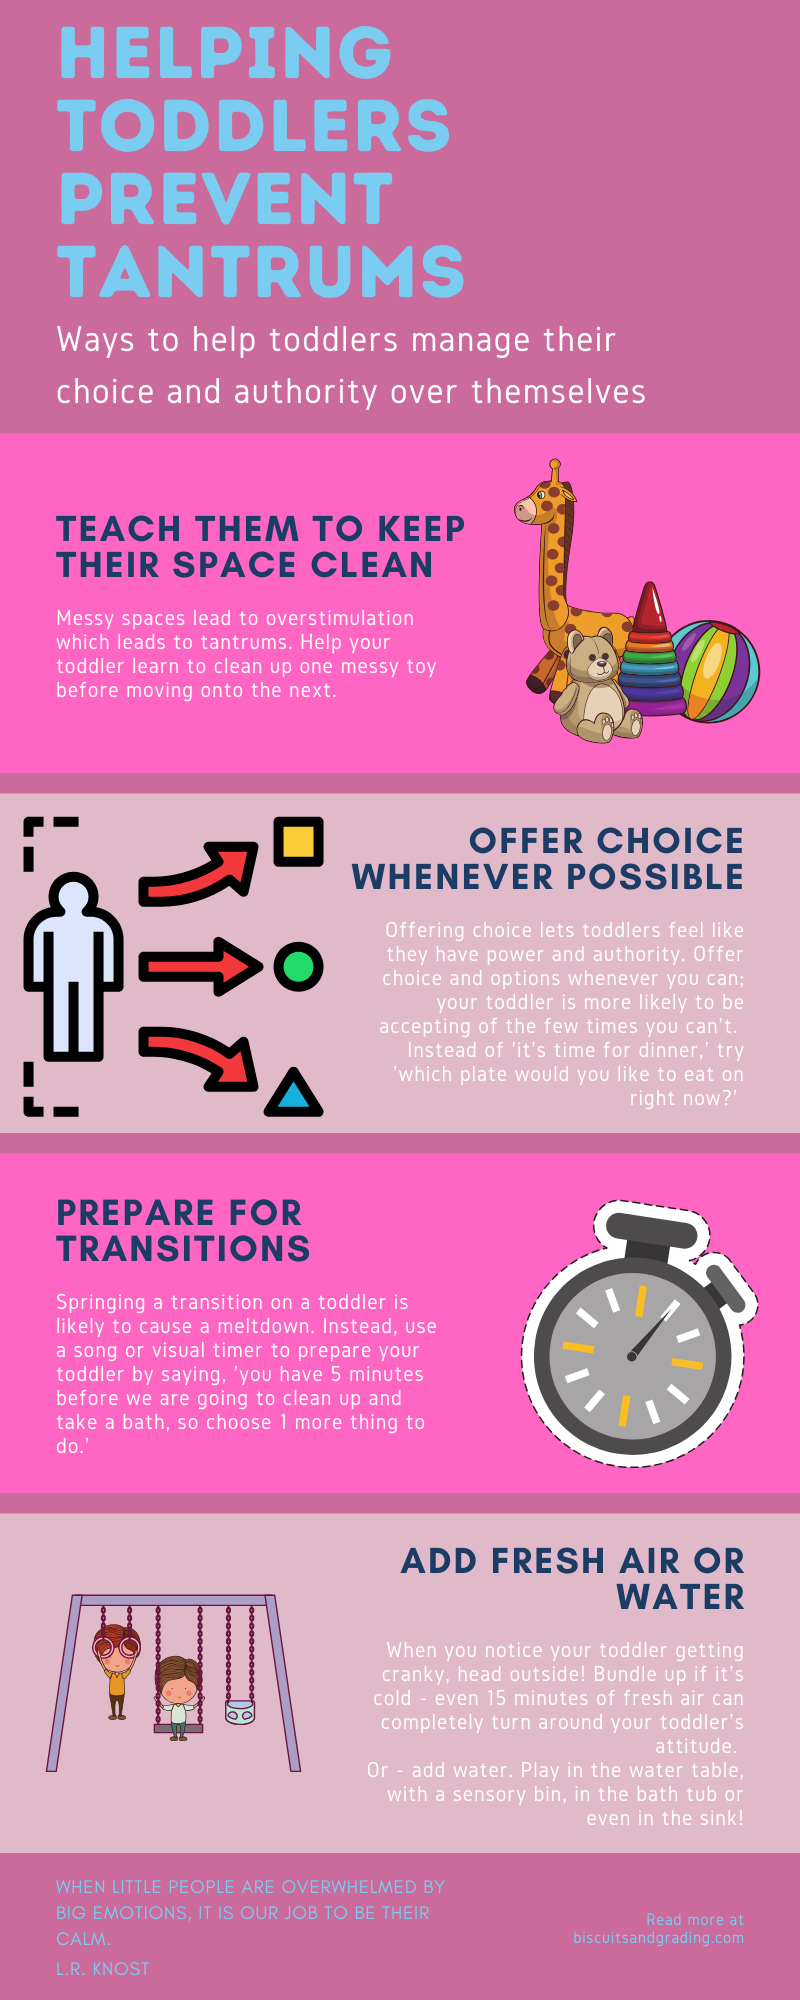 helping toddlers prevent tantrums infographic